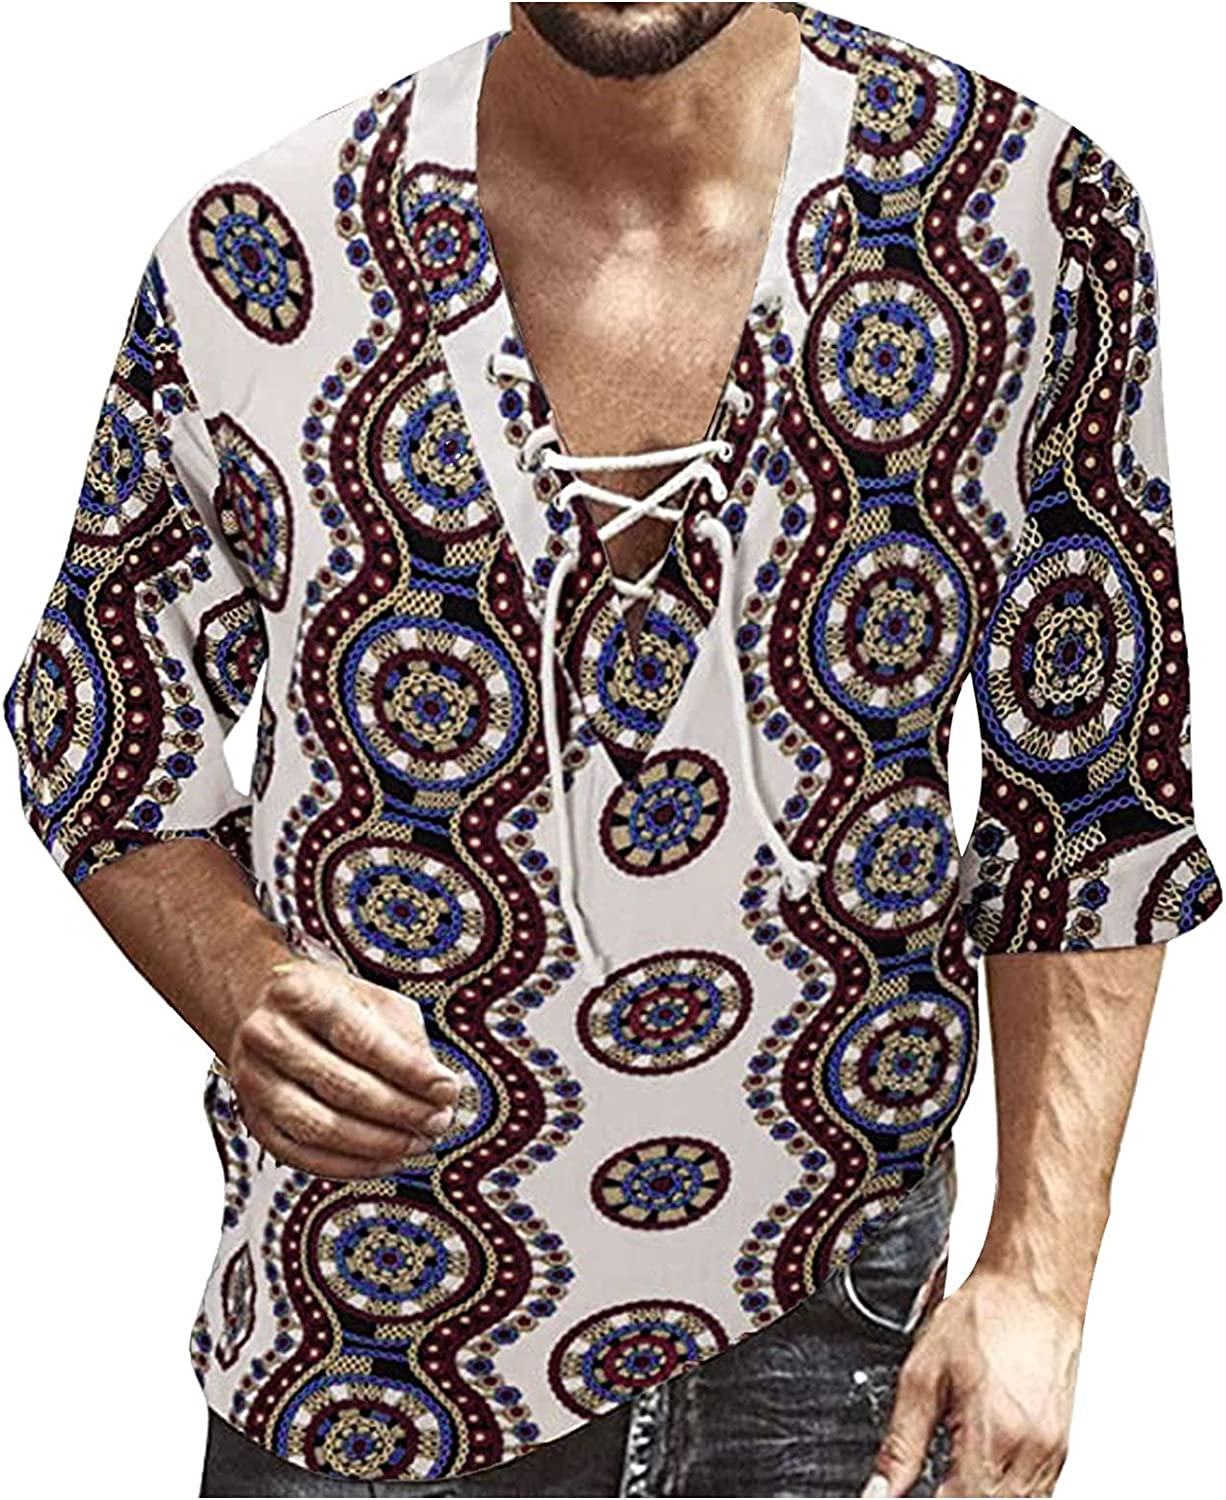 WOCACHI Henley Shirts For Mens, Lace-up Hippie V Neck Linen Cotton Beach T-Shirts Half Sleeve Casual Soft Tee Tops